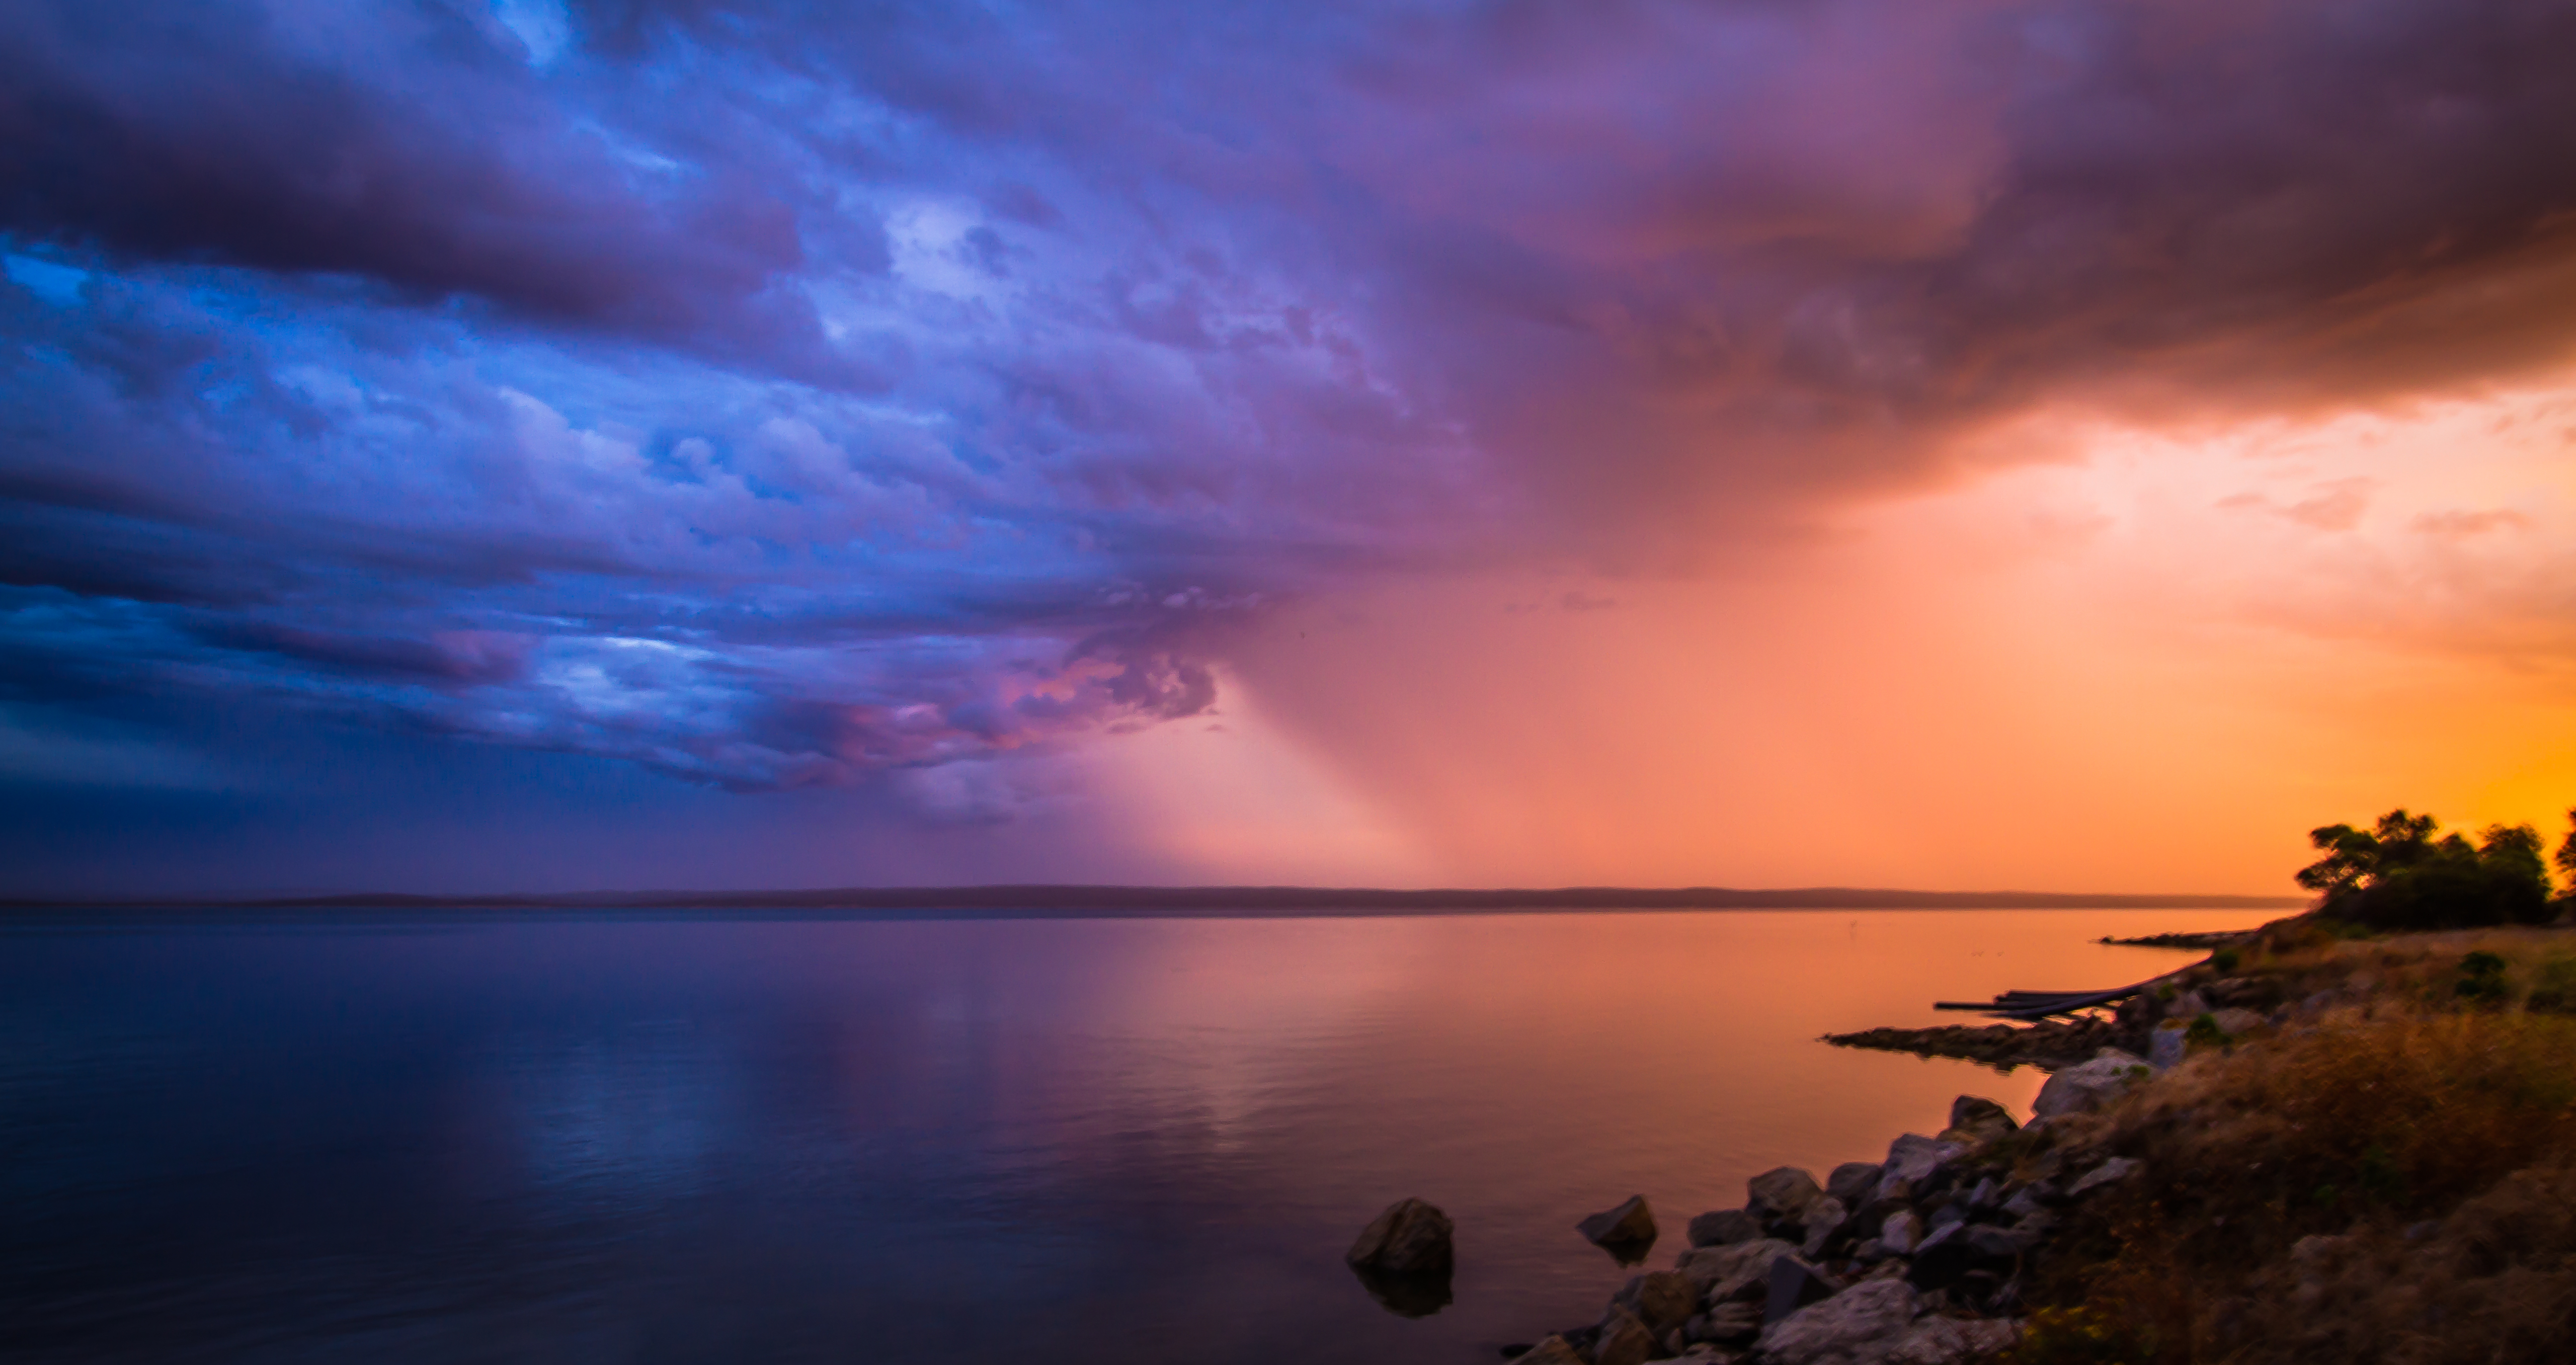 File:The calm after the storm - Port Lincoln - South Australia ...